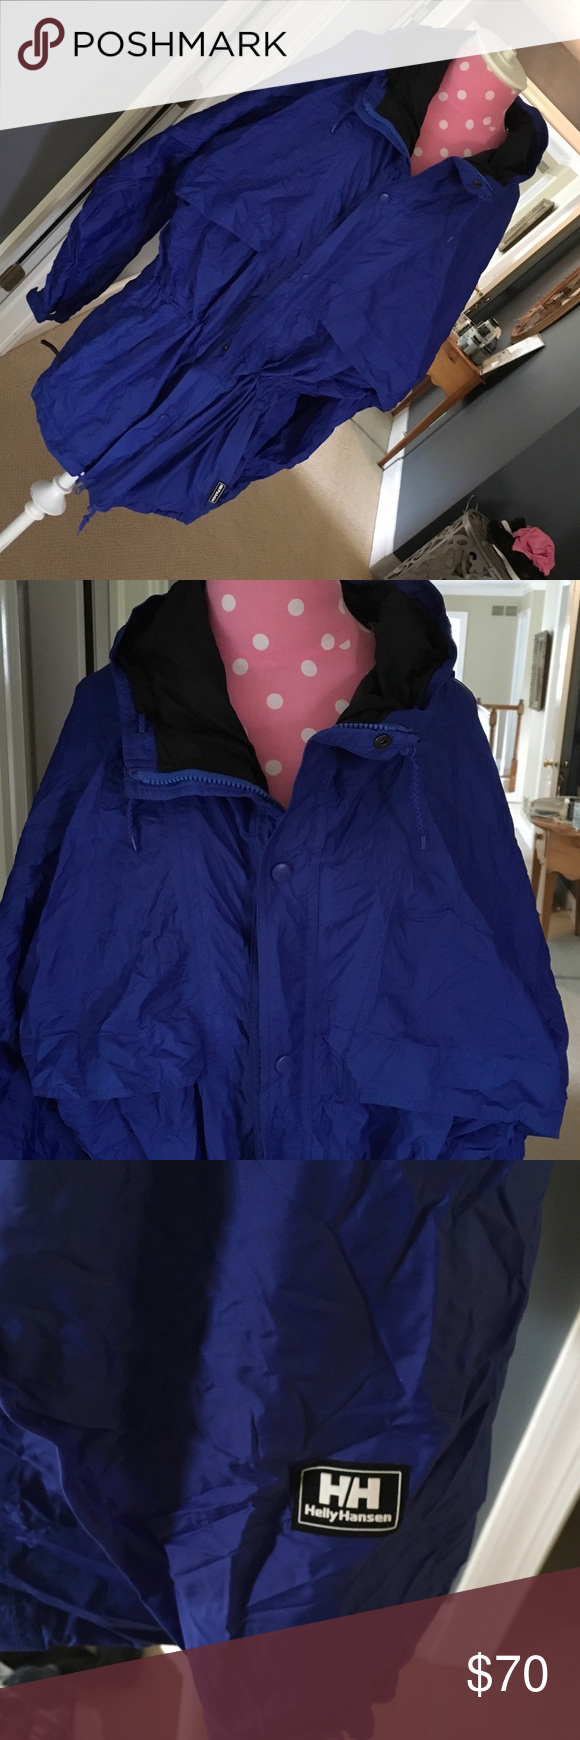 Jelly Hansen anorak Size medium anorak. Perfect condition. Pocket is a stuff sack. Mesh upper back inside lining. Interior Drawstring waist with cinches.hood can roll down and snap into place. Helly Hansen Jackets & Coats